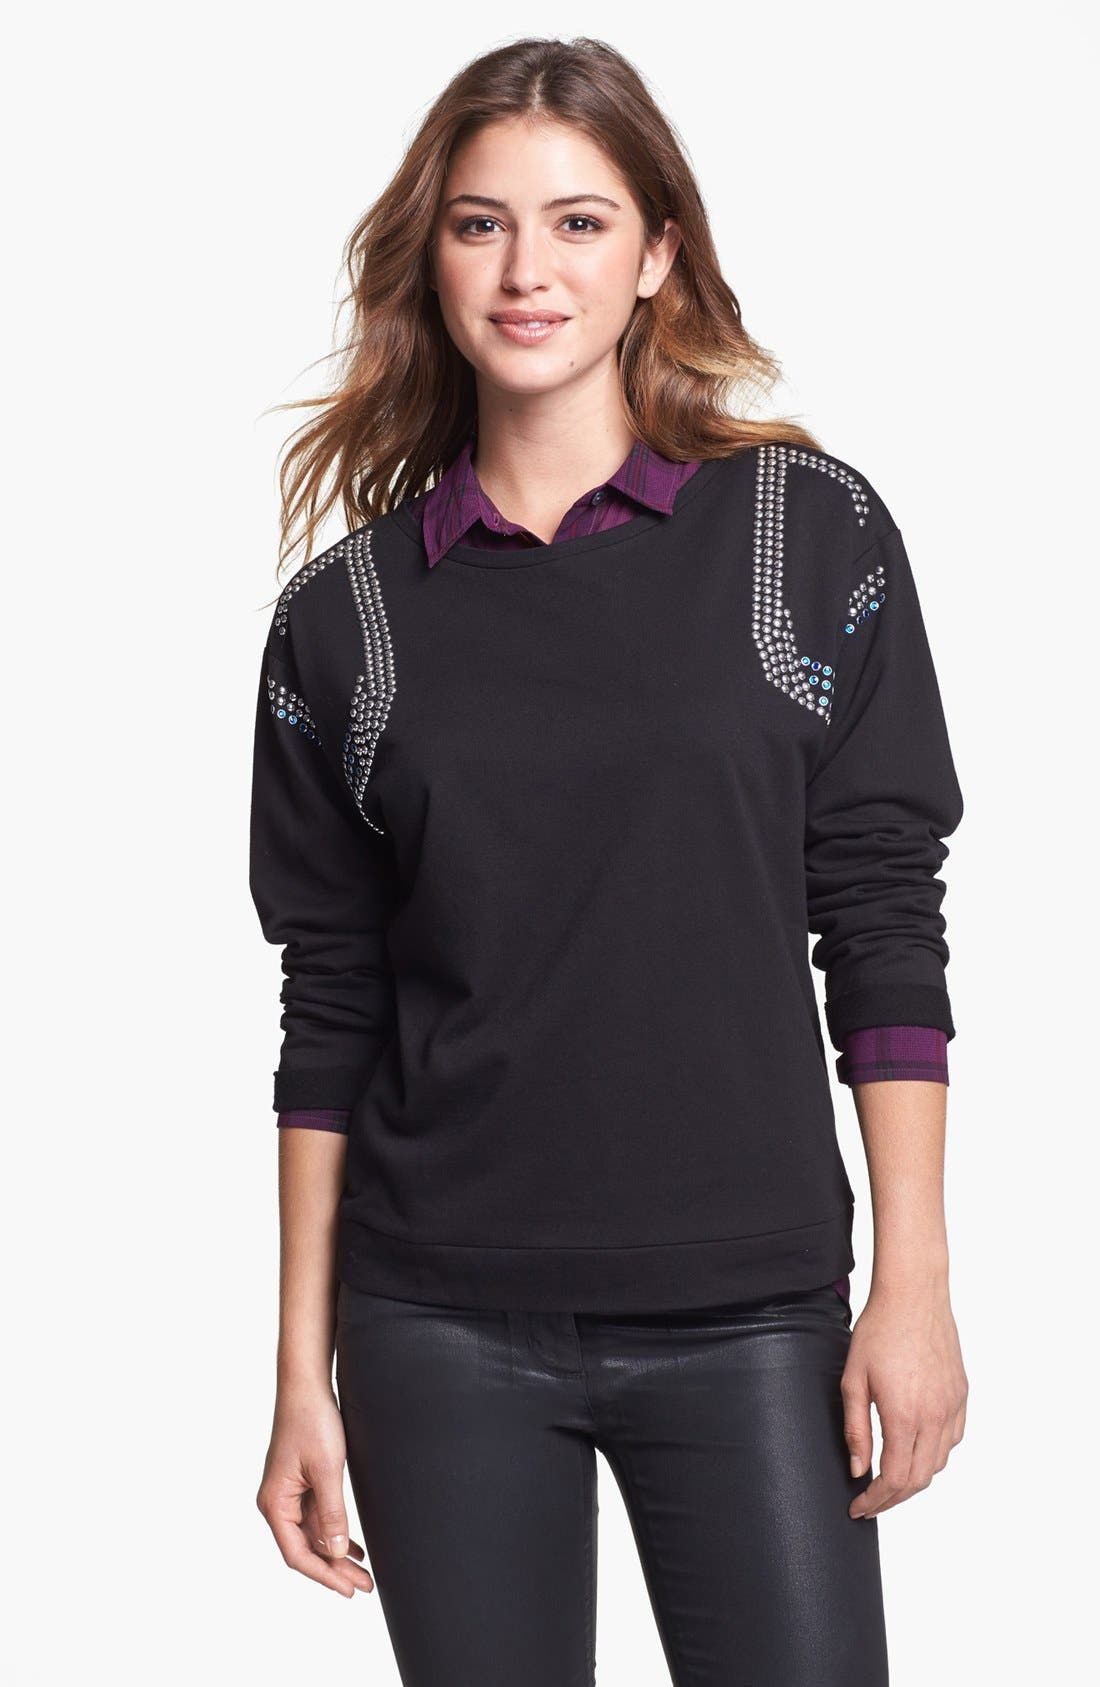 Alternate Image 1 Selected - Two by Vince Camuto Studded Sweatshirt